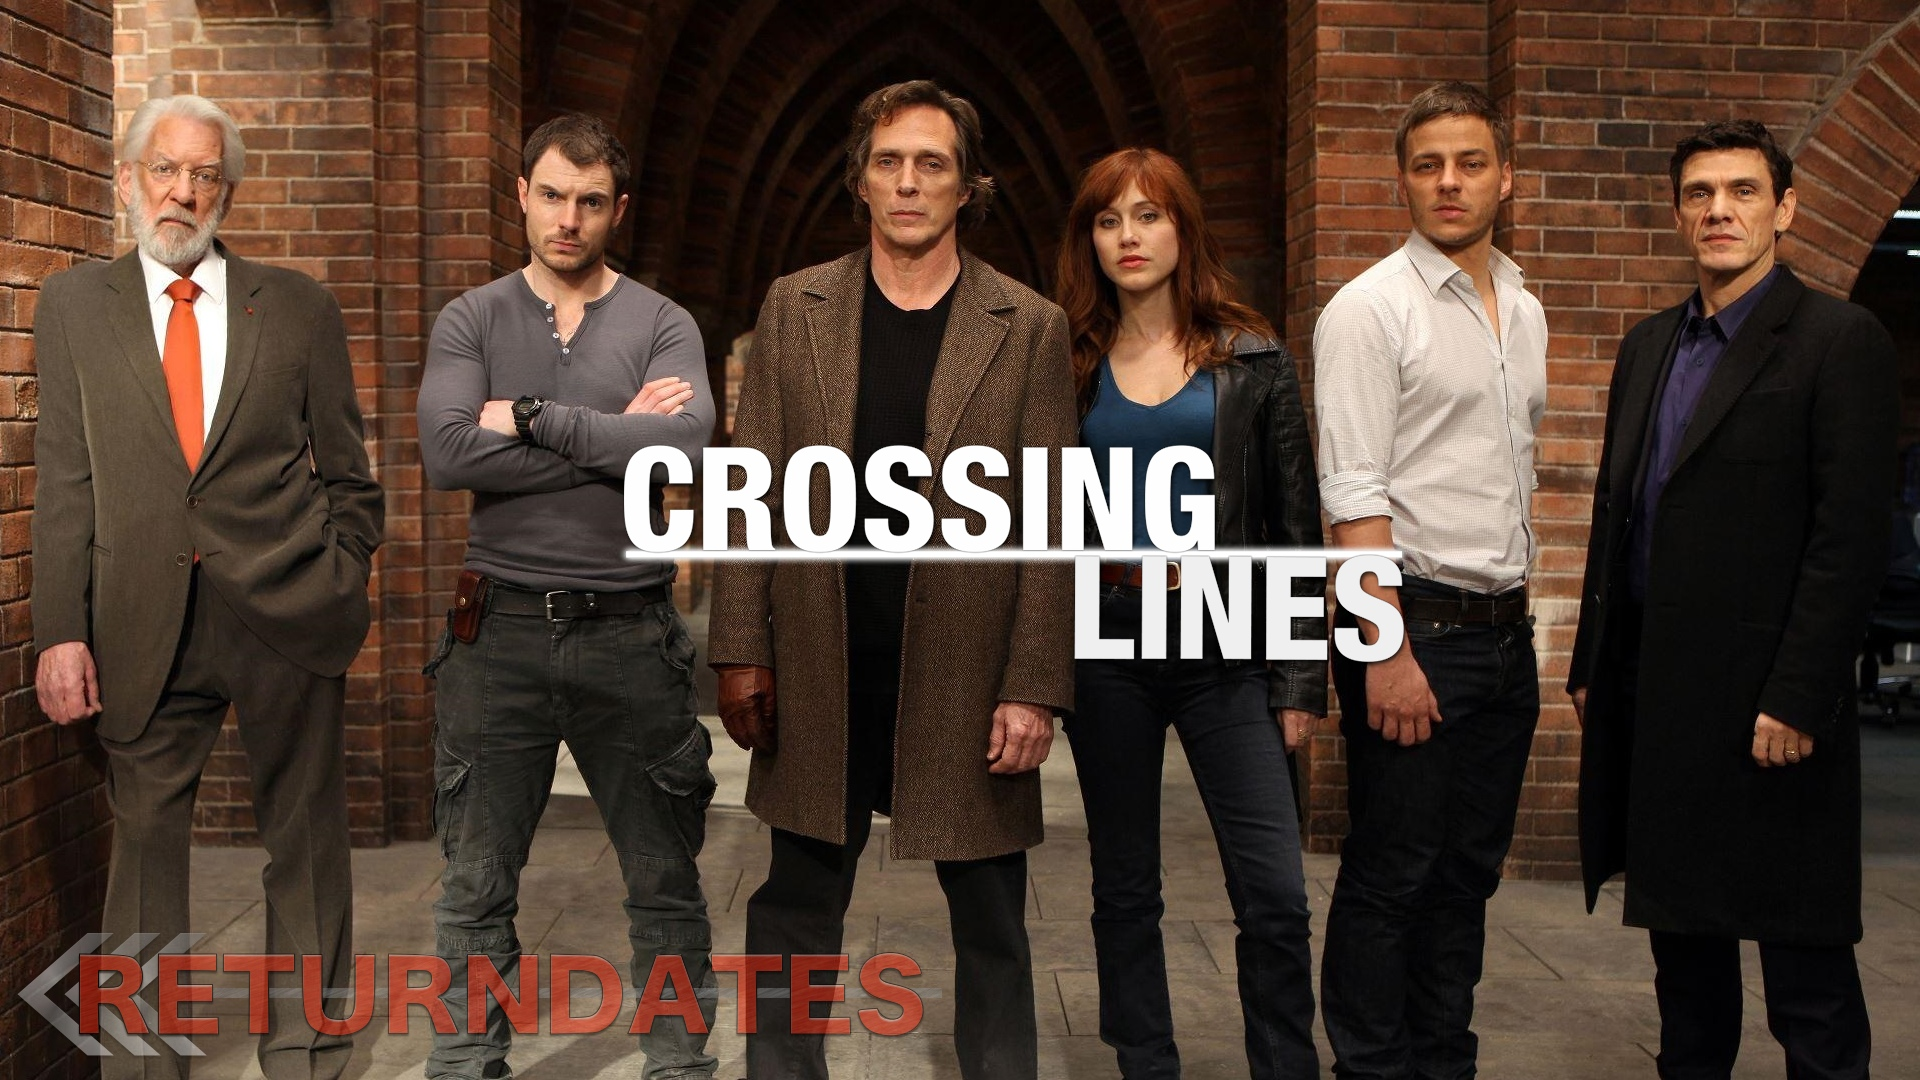 Crossed The Line Quotes: Crossing Lines Return Date 2018